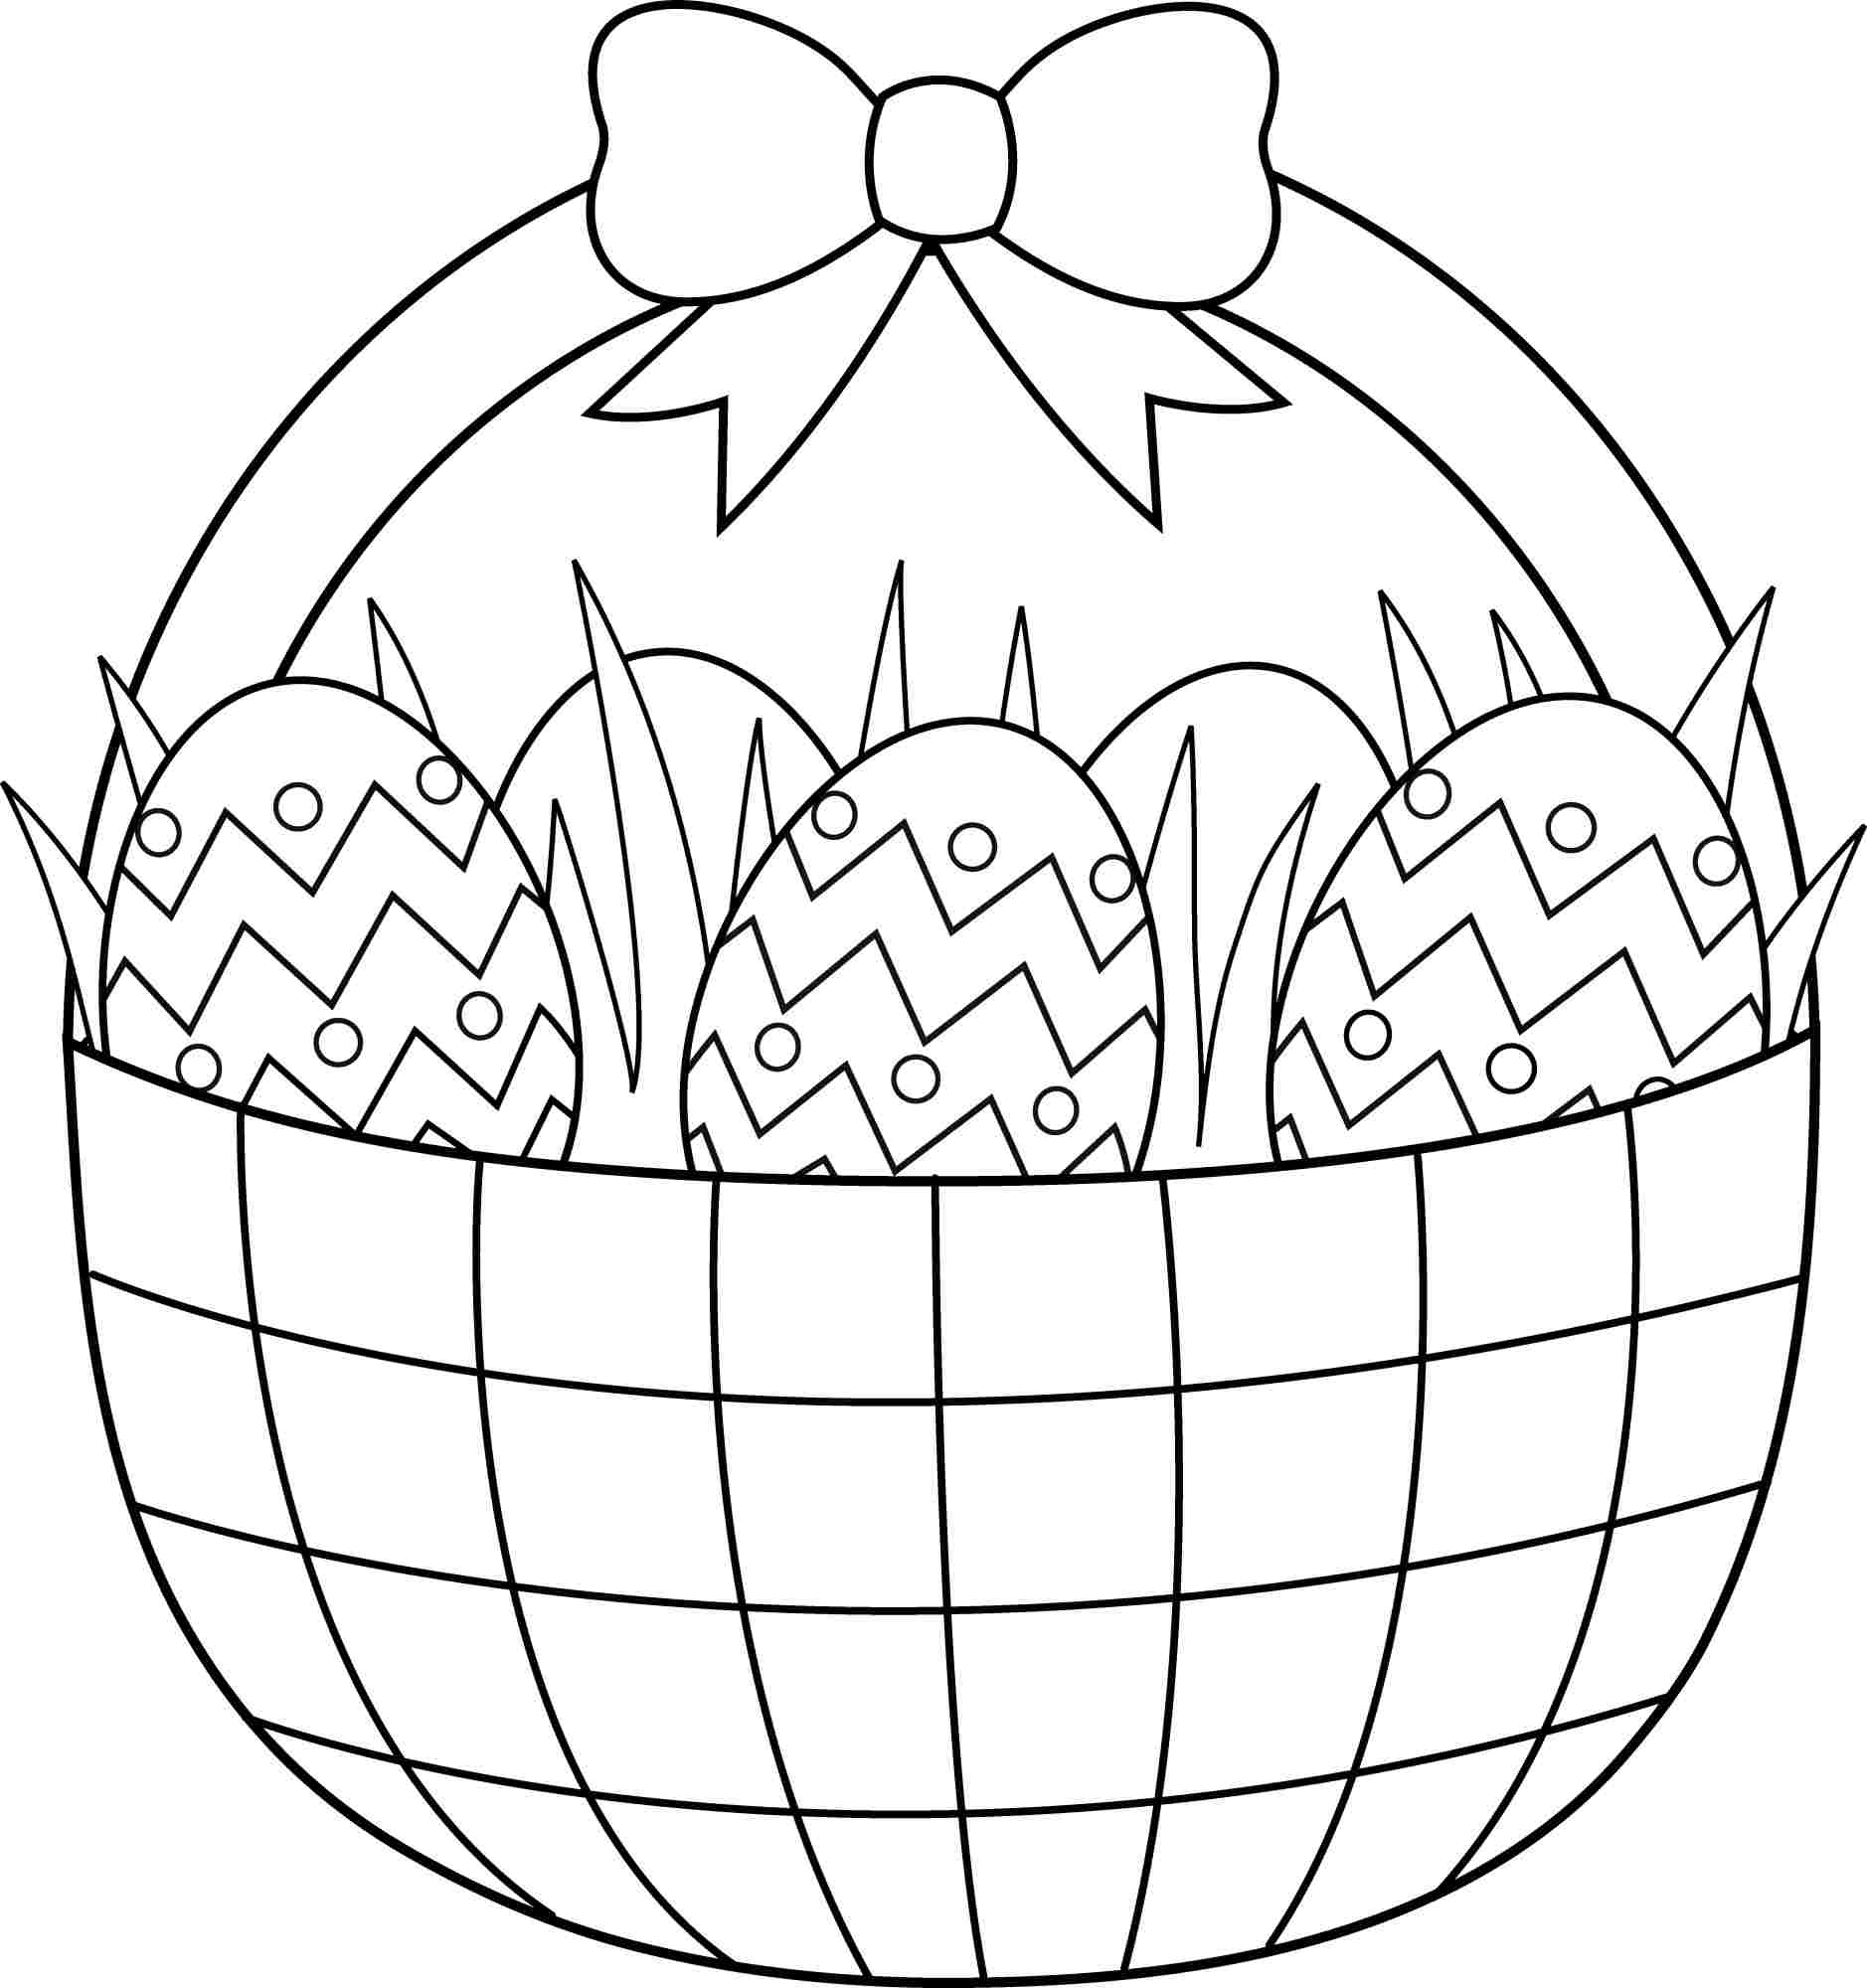 Coloring Pages : Coloring Pages Printable Easter Photo Ideas Drawing - Free Printable Easter Coloring Pages